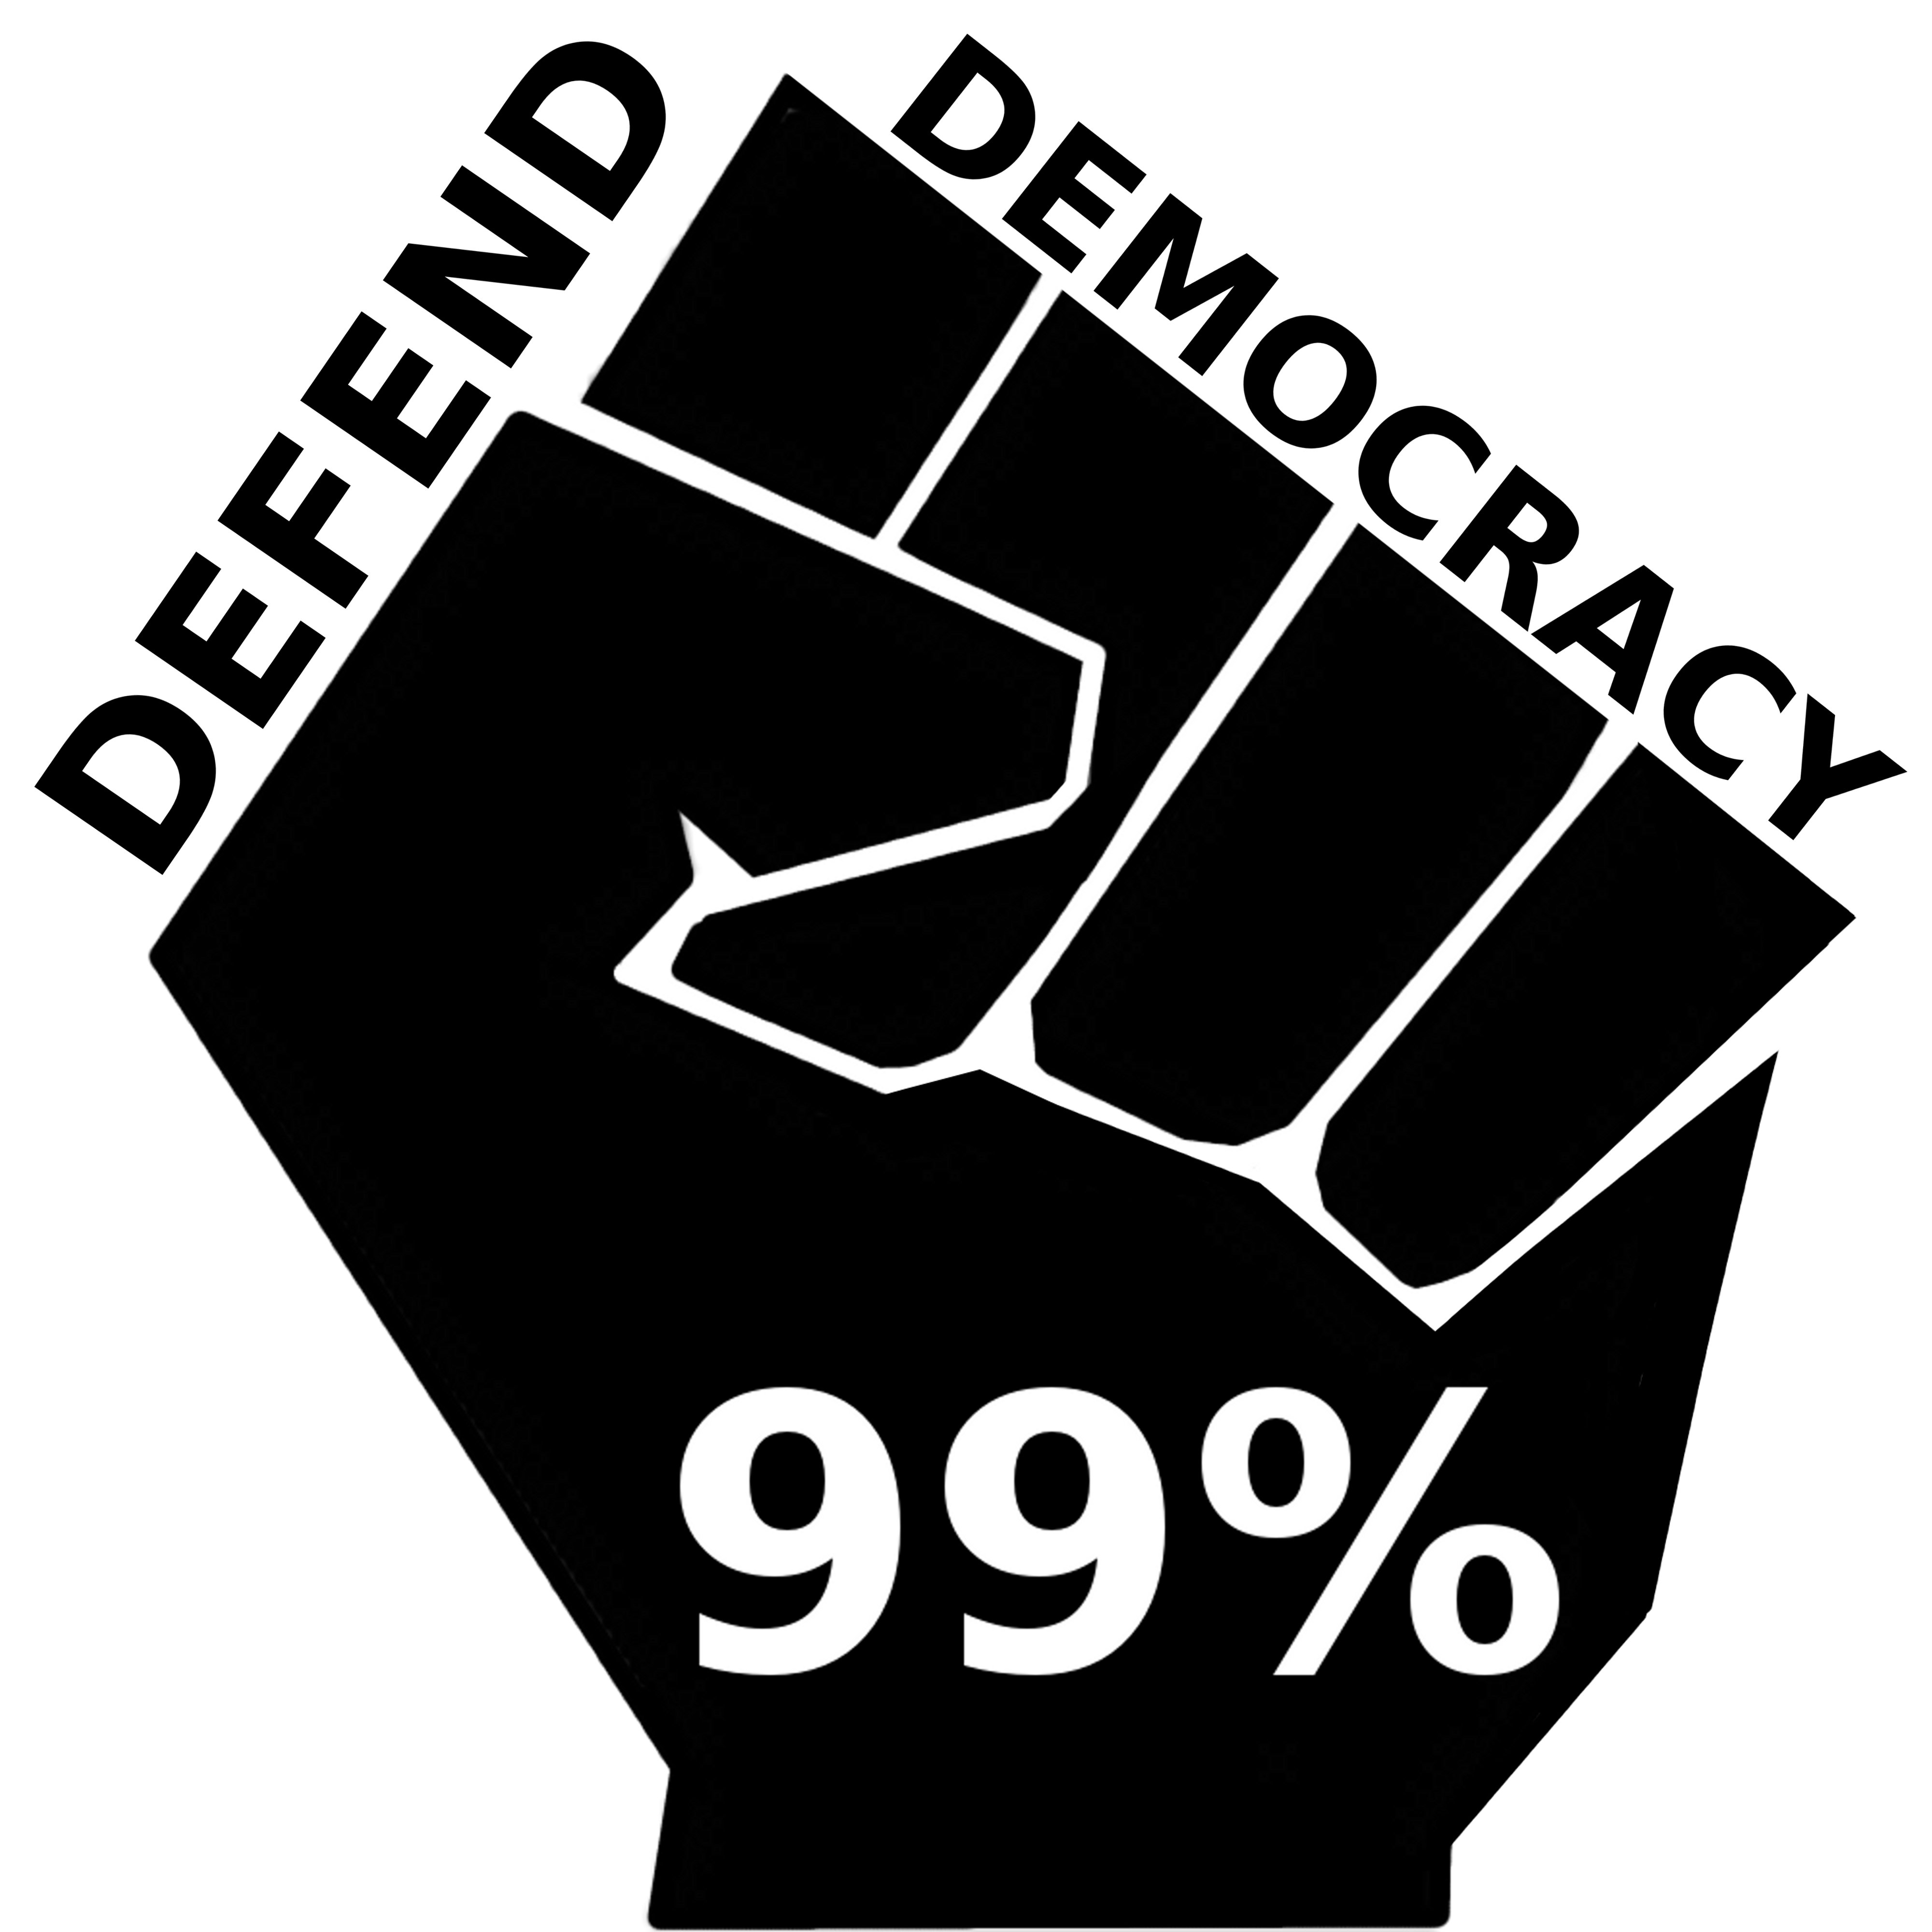 Democracy clipart graphic royalty free Free Democracy Cliparts, Download Free Clip Art, Free Clip Art on ... graphic royalty free